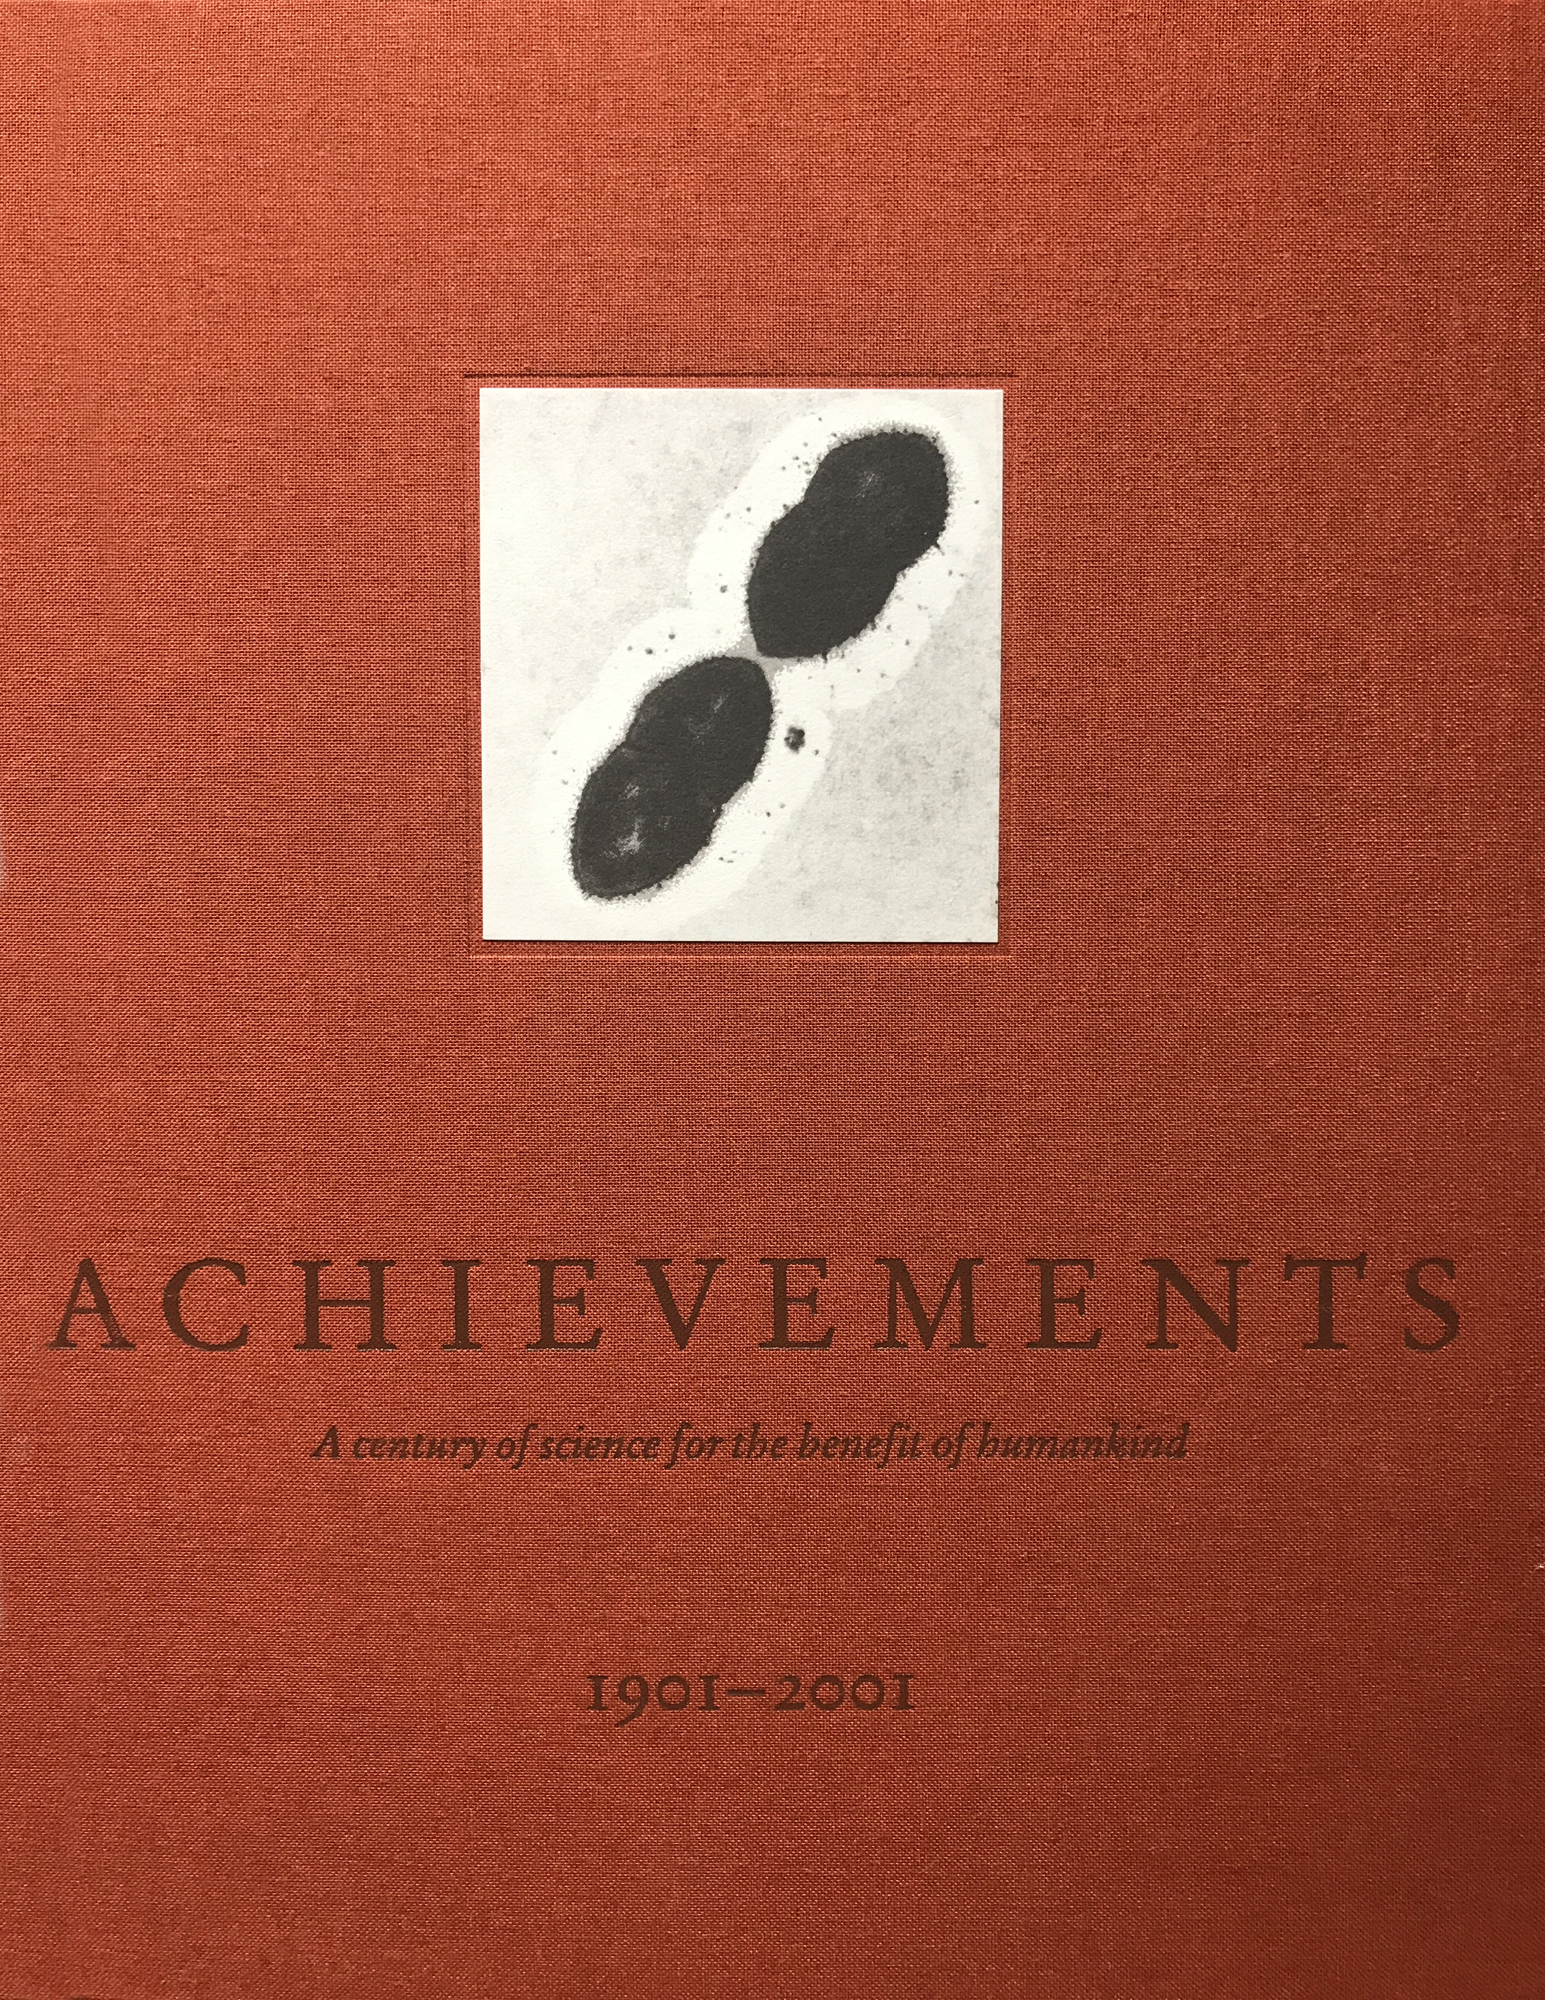 Rockefeller University Achievements: 1901-2001 (Rockefeller University Press, 2001)  - A large-format book, lavishly illustrated with both historical and recent photography, Achievements chronicles the first 100 years of The Rockefeller University, a premiere center for biomedical research.